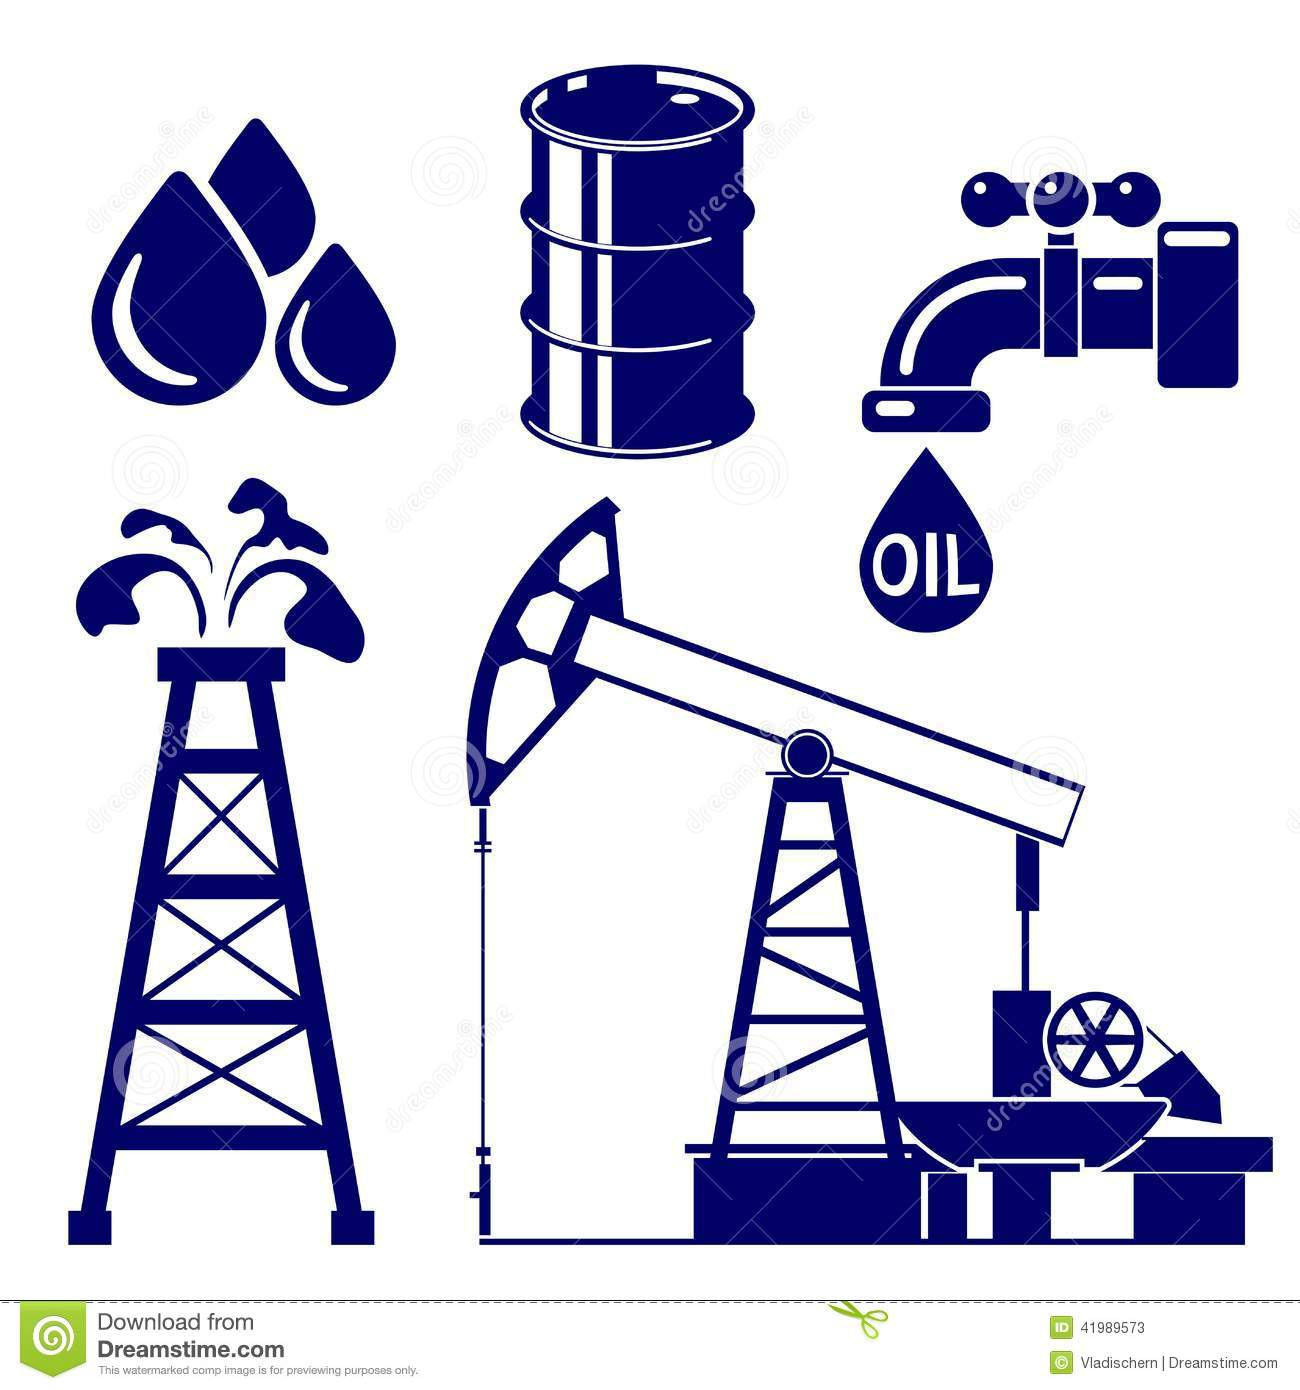 oil industry icon set vector illustration stock vector Oil Derrick Dragons Oil Derrick Dragons